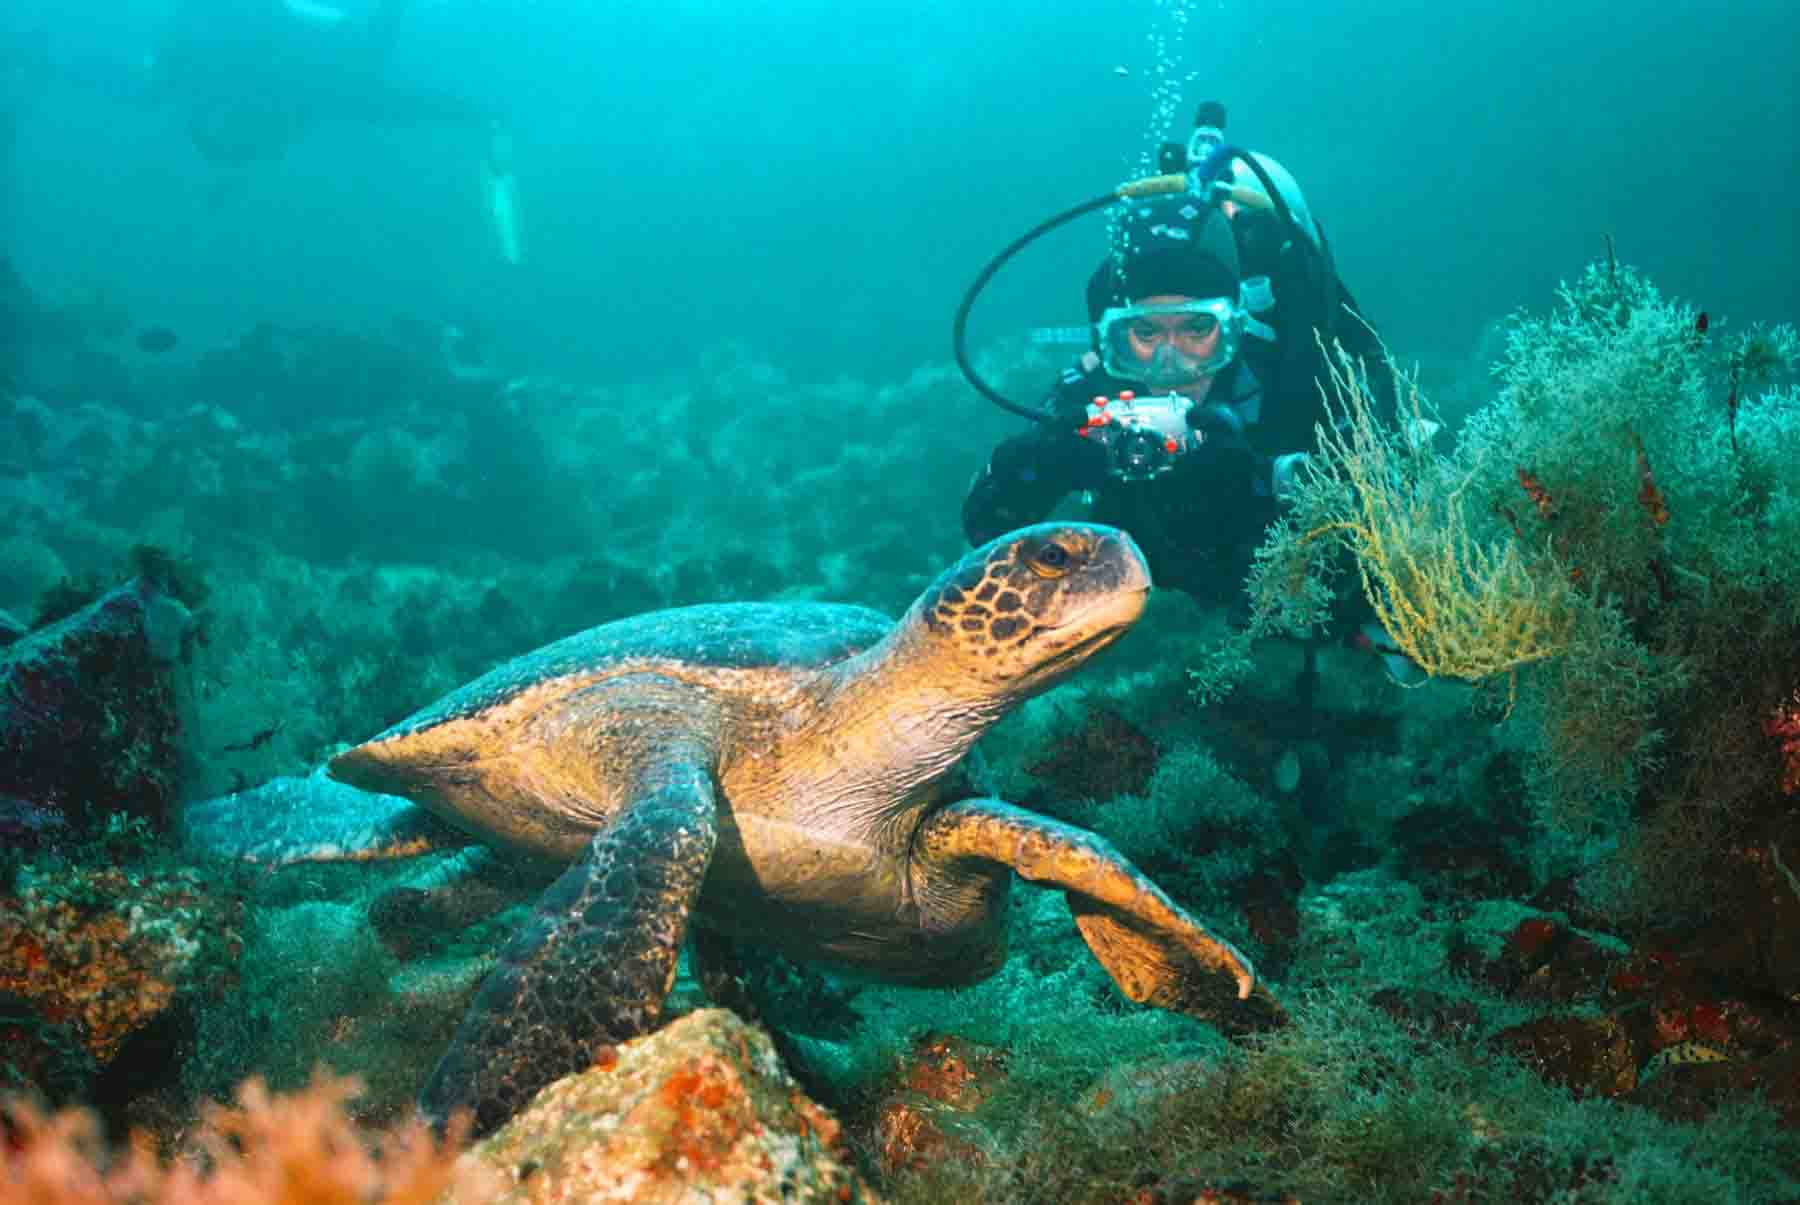 Galapagos is now open